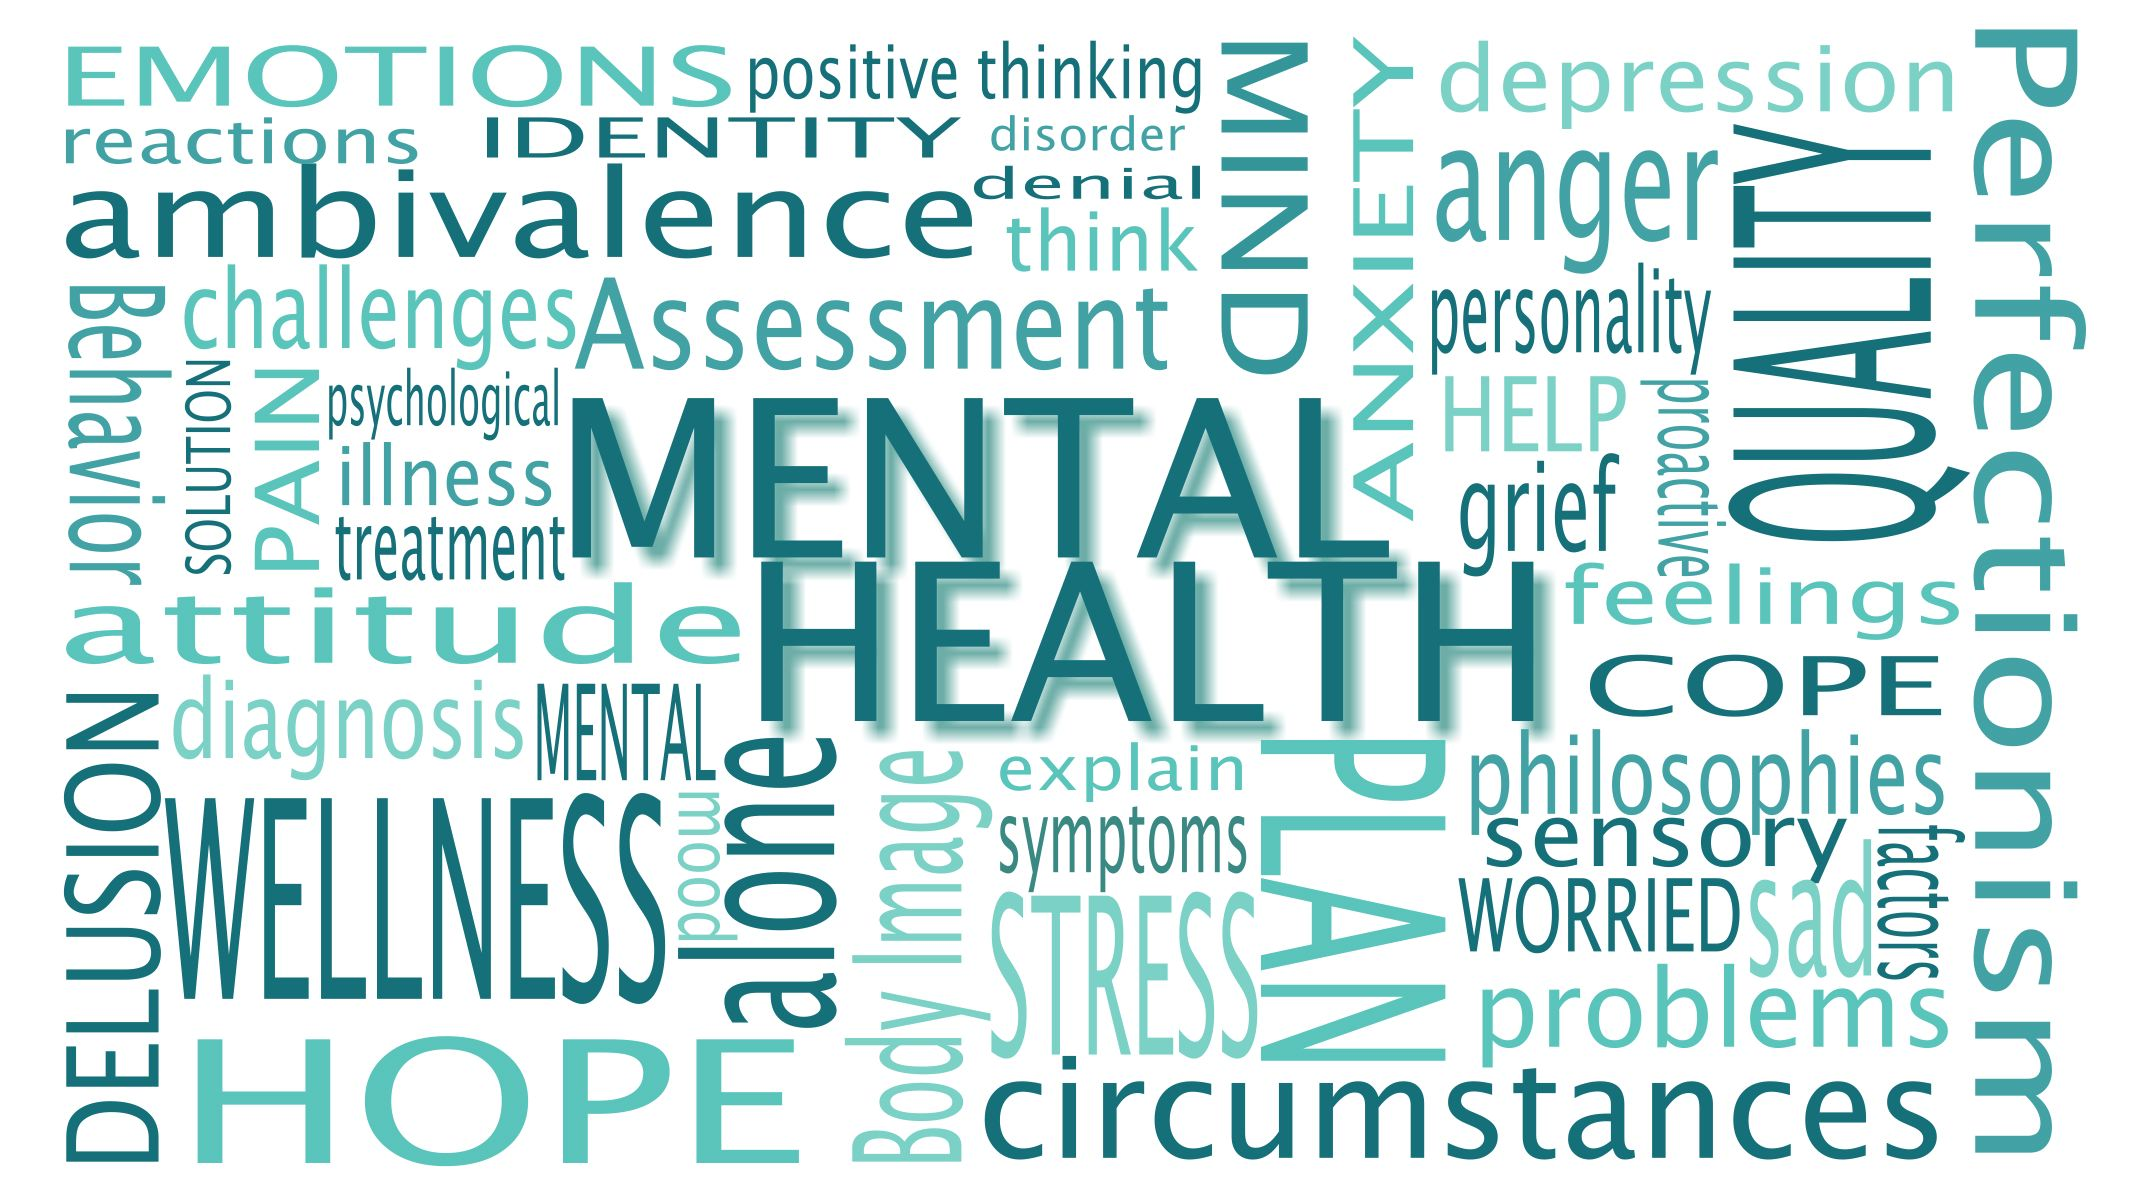 400957 Biological Considerations in Mental Health and Mental Illness solution